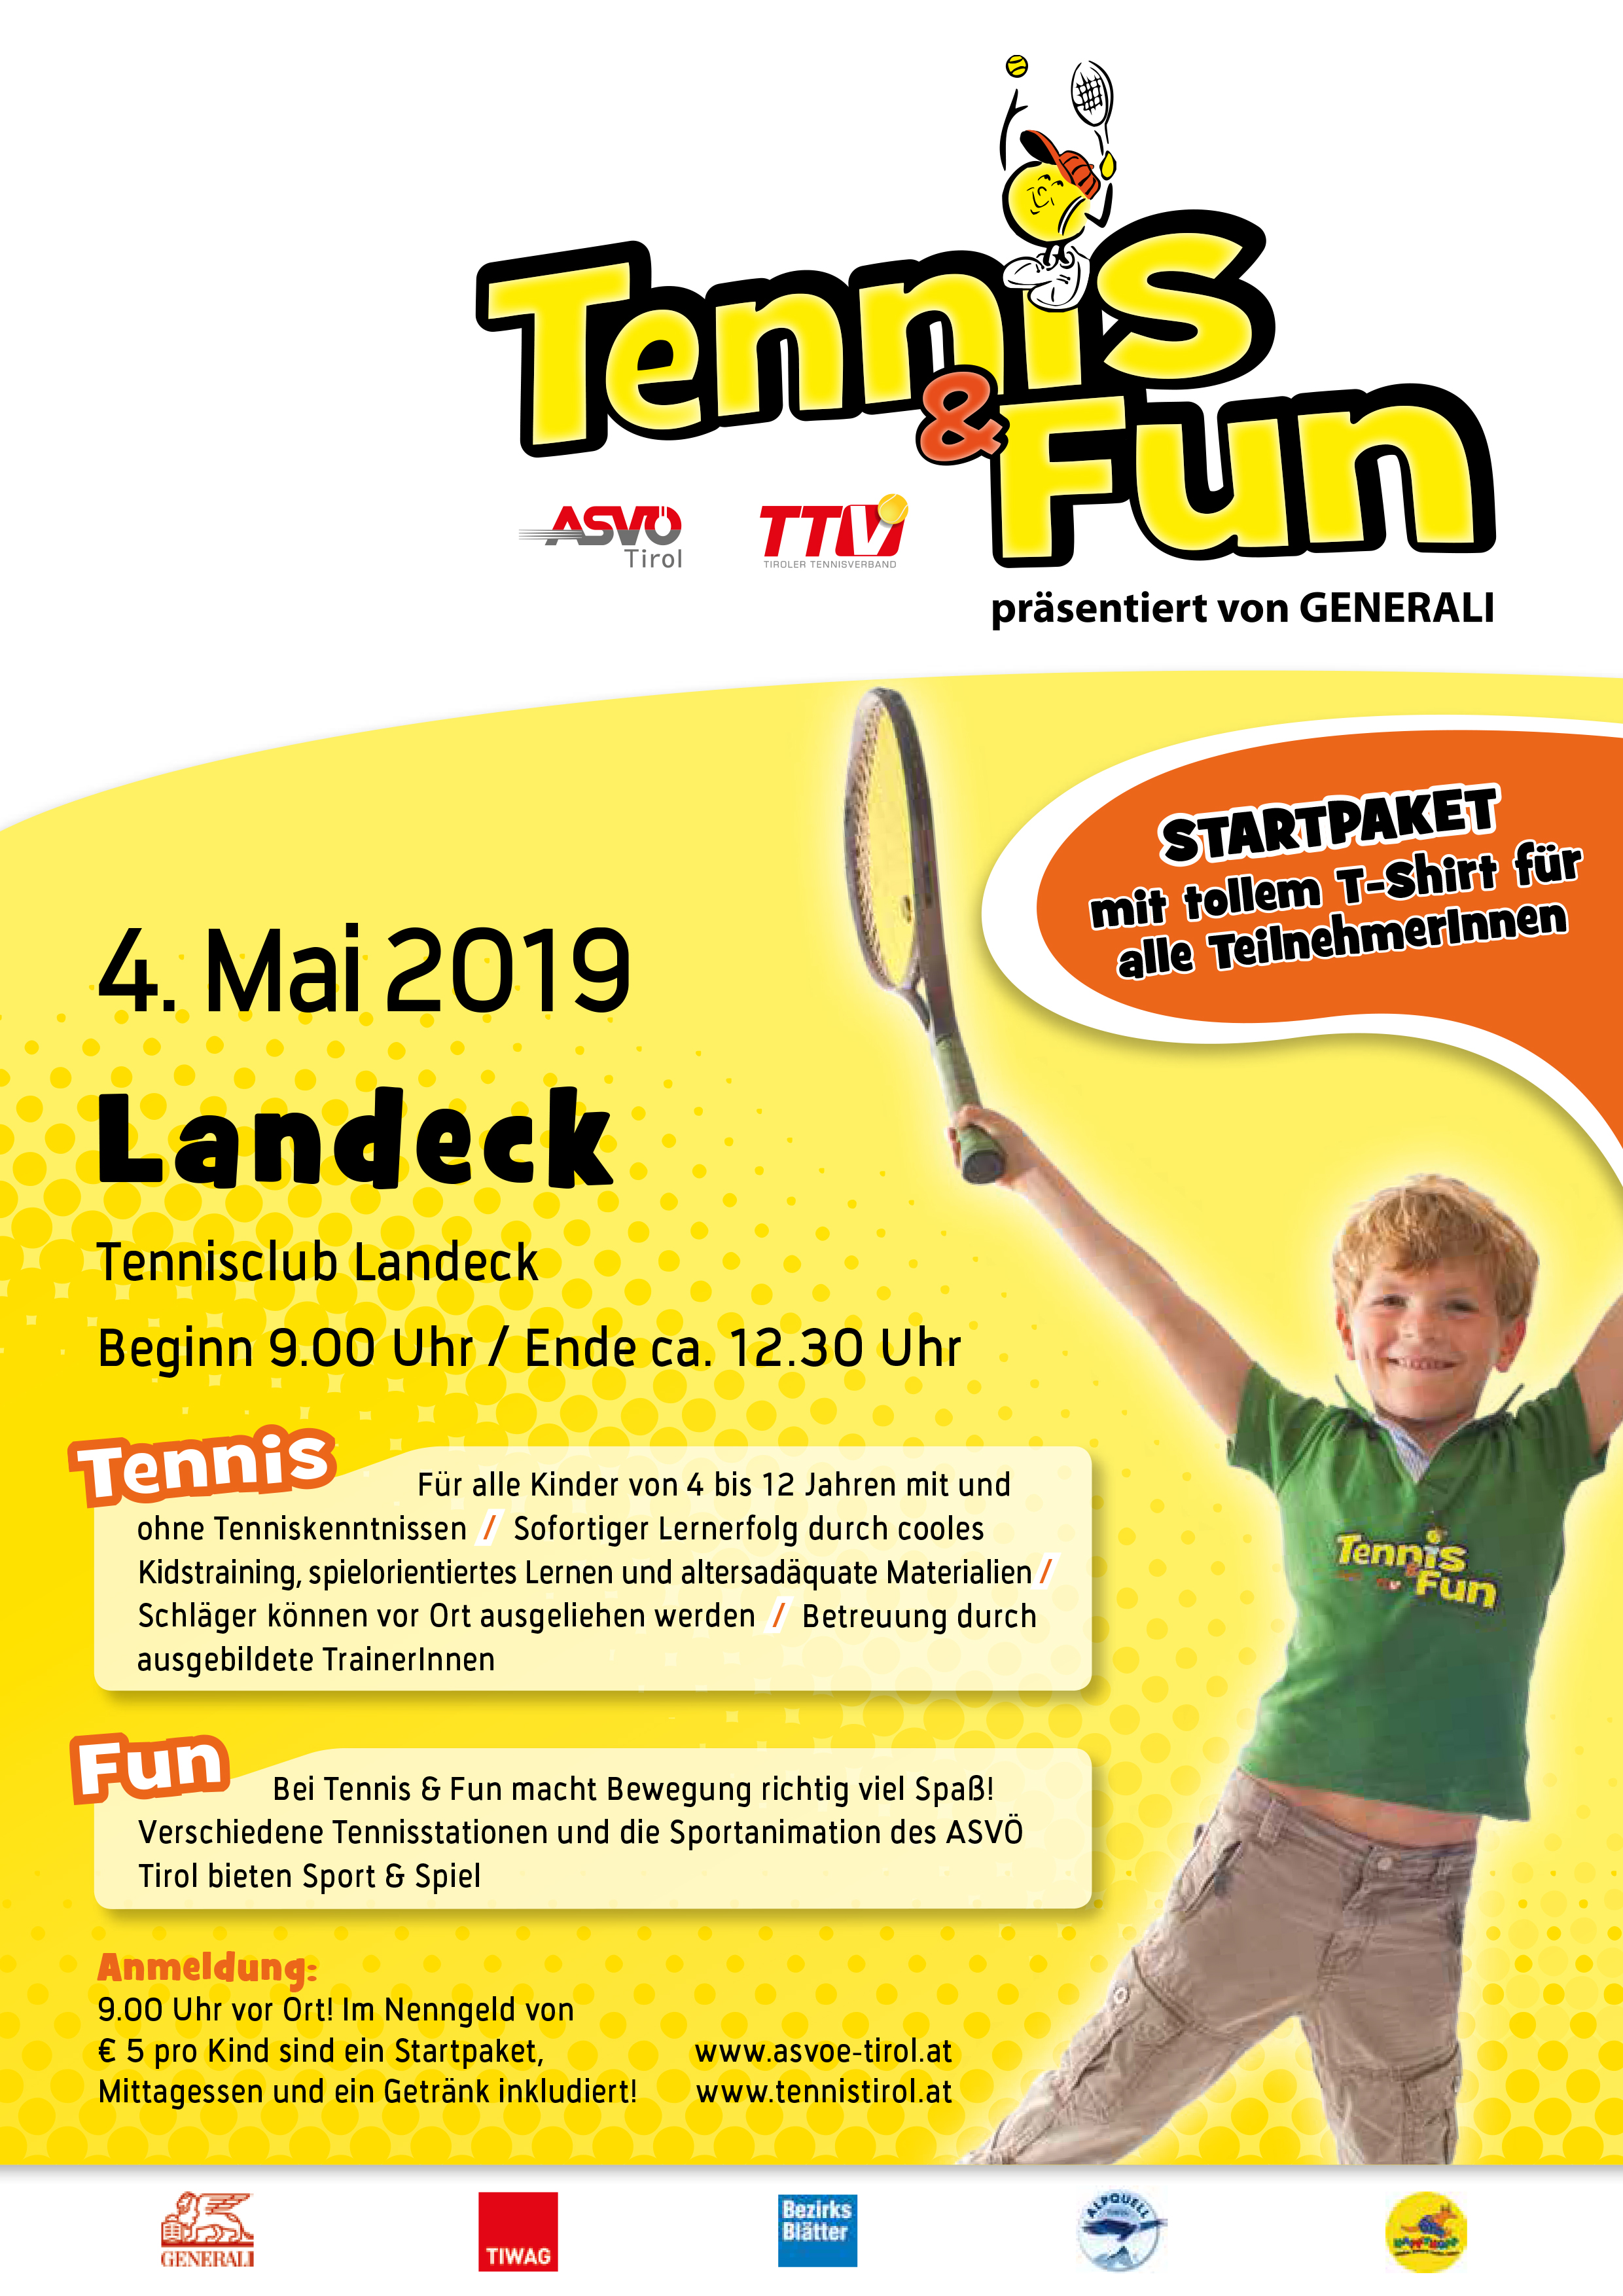 Tennis_Fun_Flyer_A4_Landeck_ansicht-1